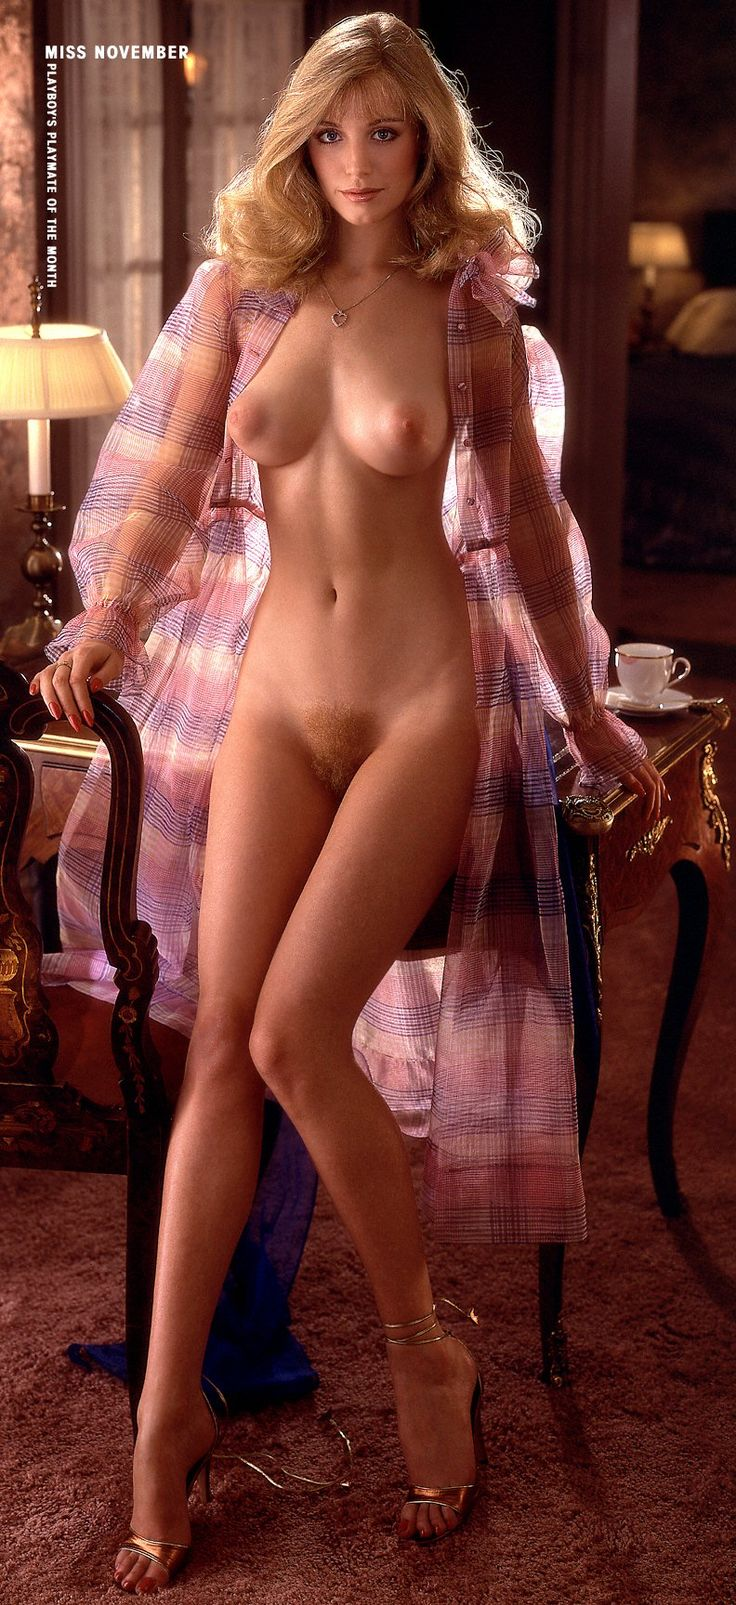 louise-stratten-pussy-kate-garraway-pussy